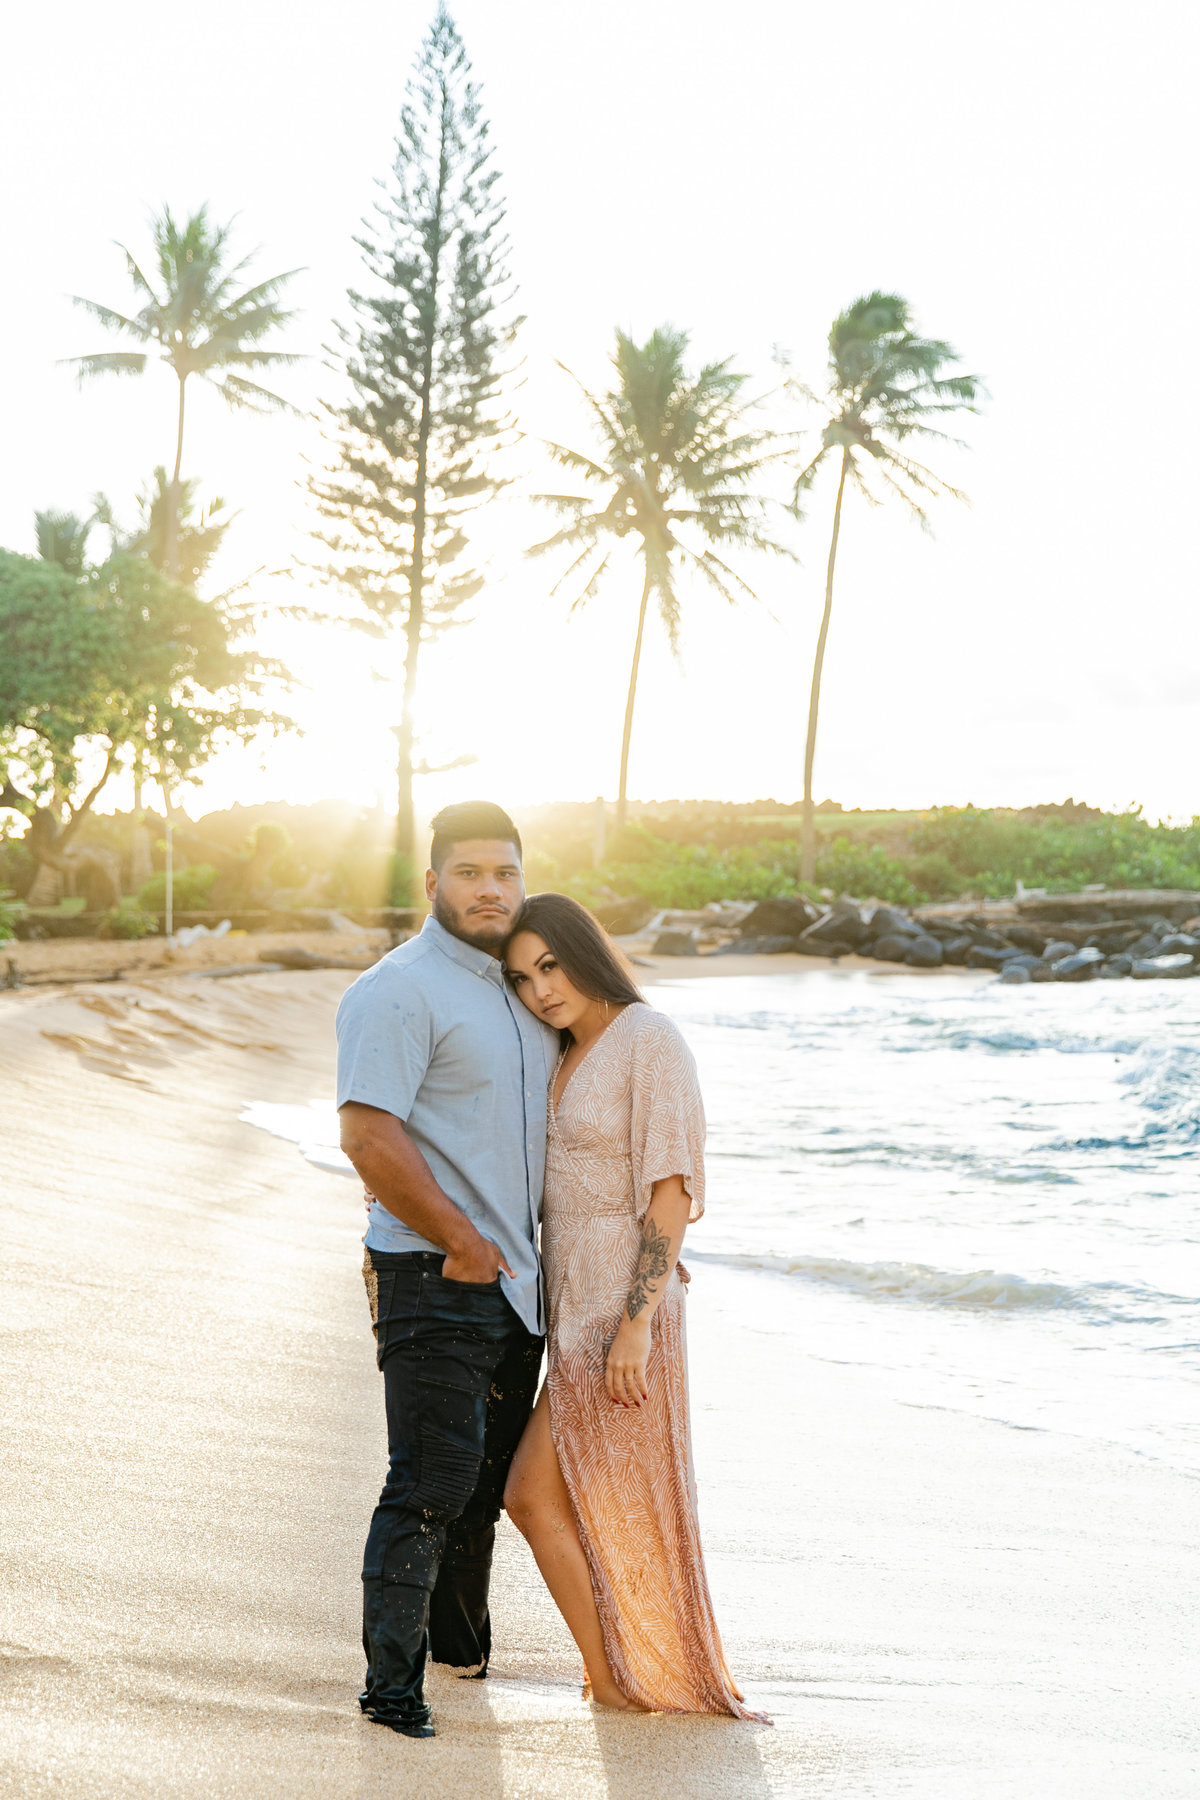 Karlie Colleen Photography - Kauai Hawaii Wedding Photography - Sydney & BJ -110